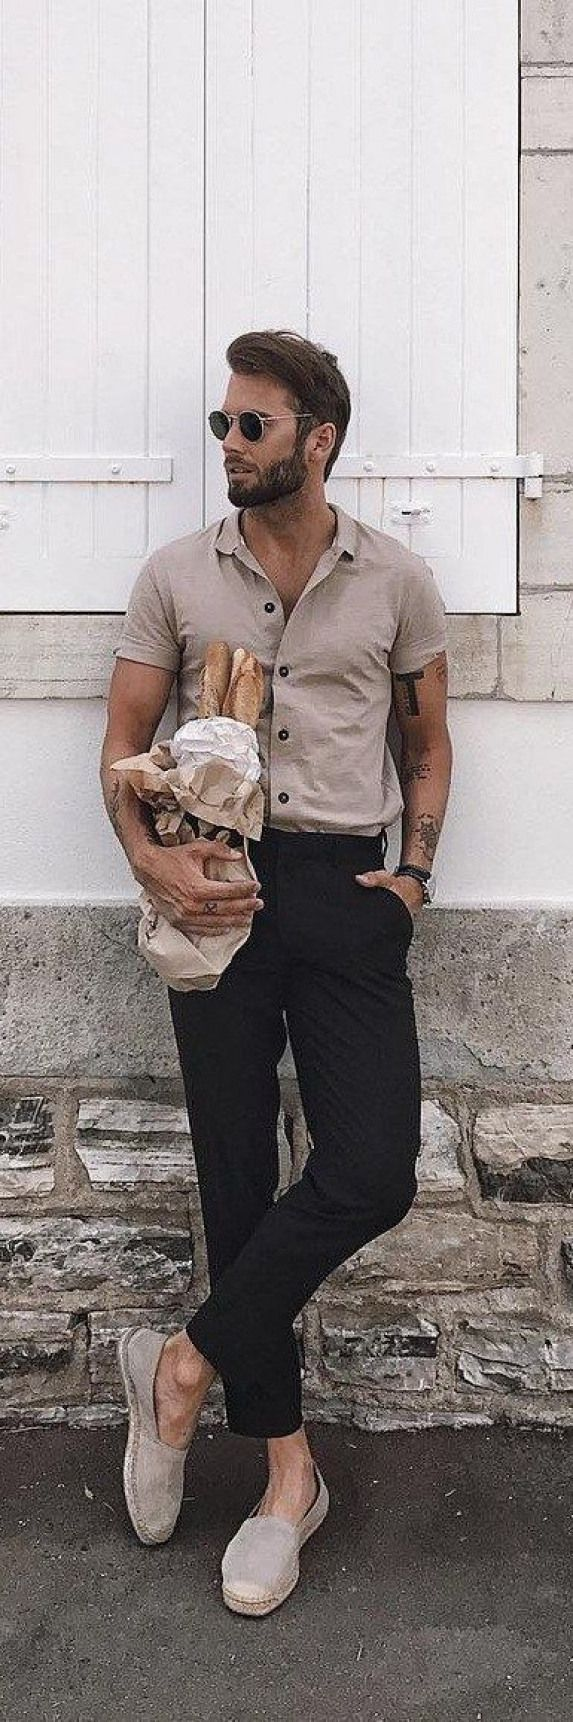 Fashionable Birthday Outfit Ideas For Men Designerclothing Designer Clothing Mens Outfits Dinner Outfits Casual Summer Outfits [ 1722 x 573 Pixel ]